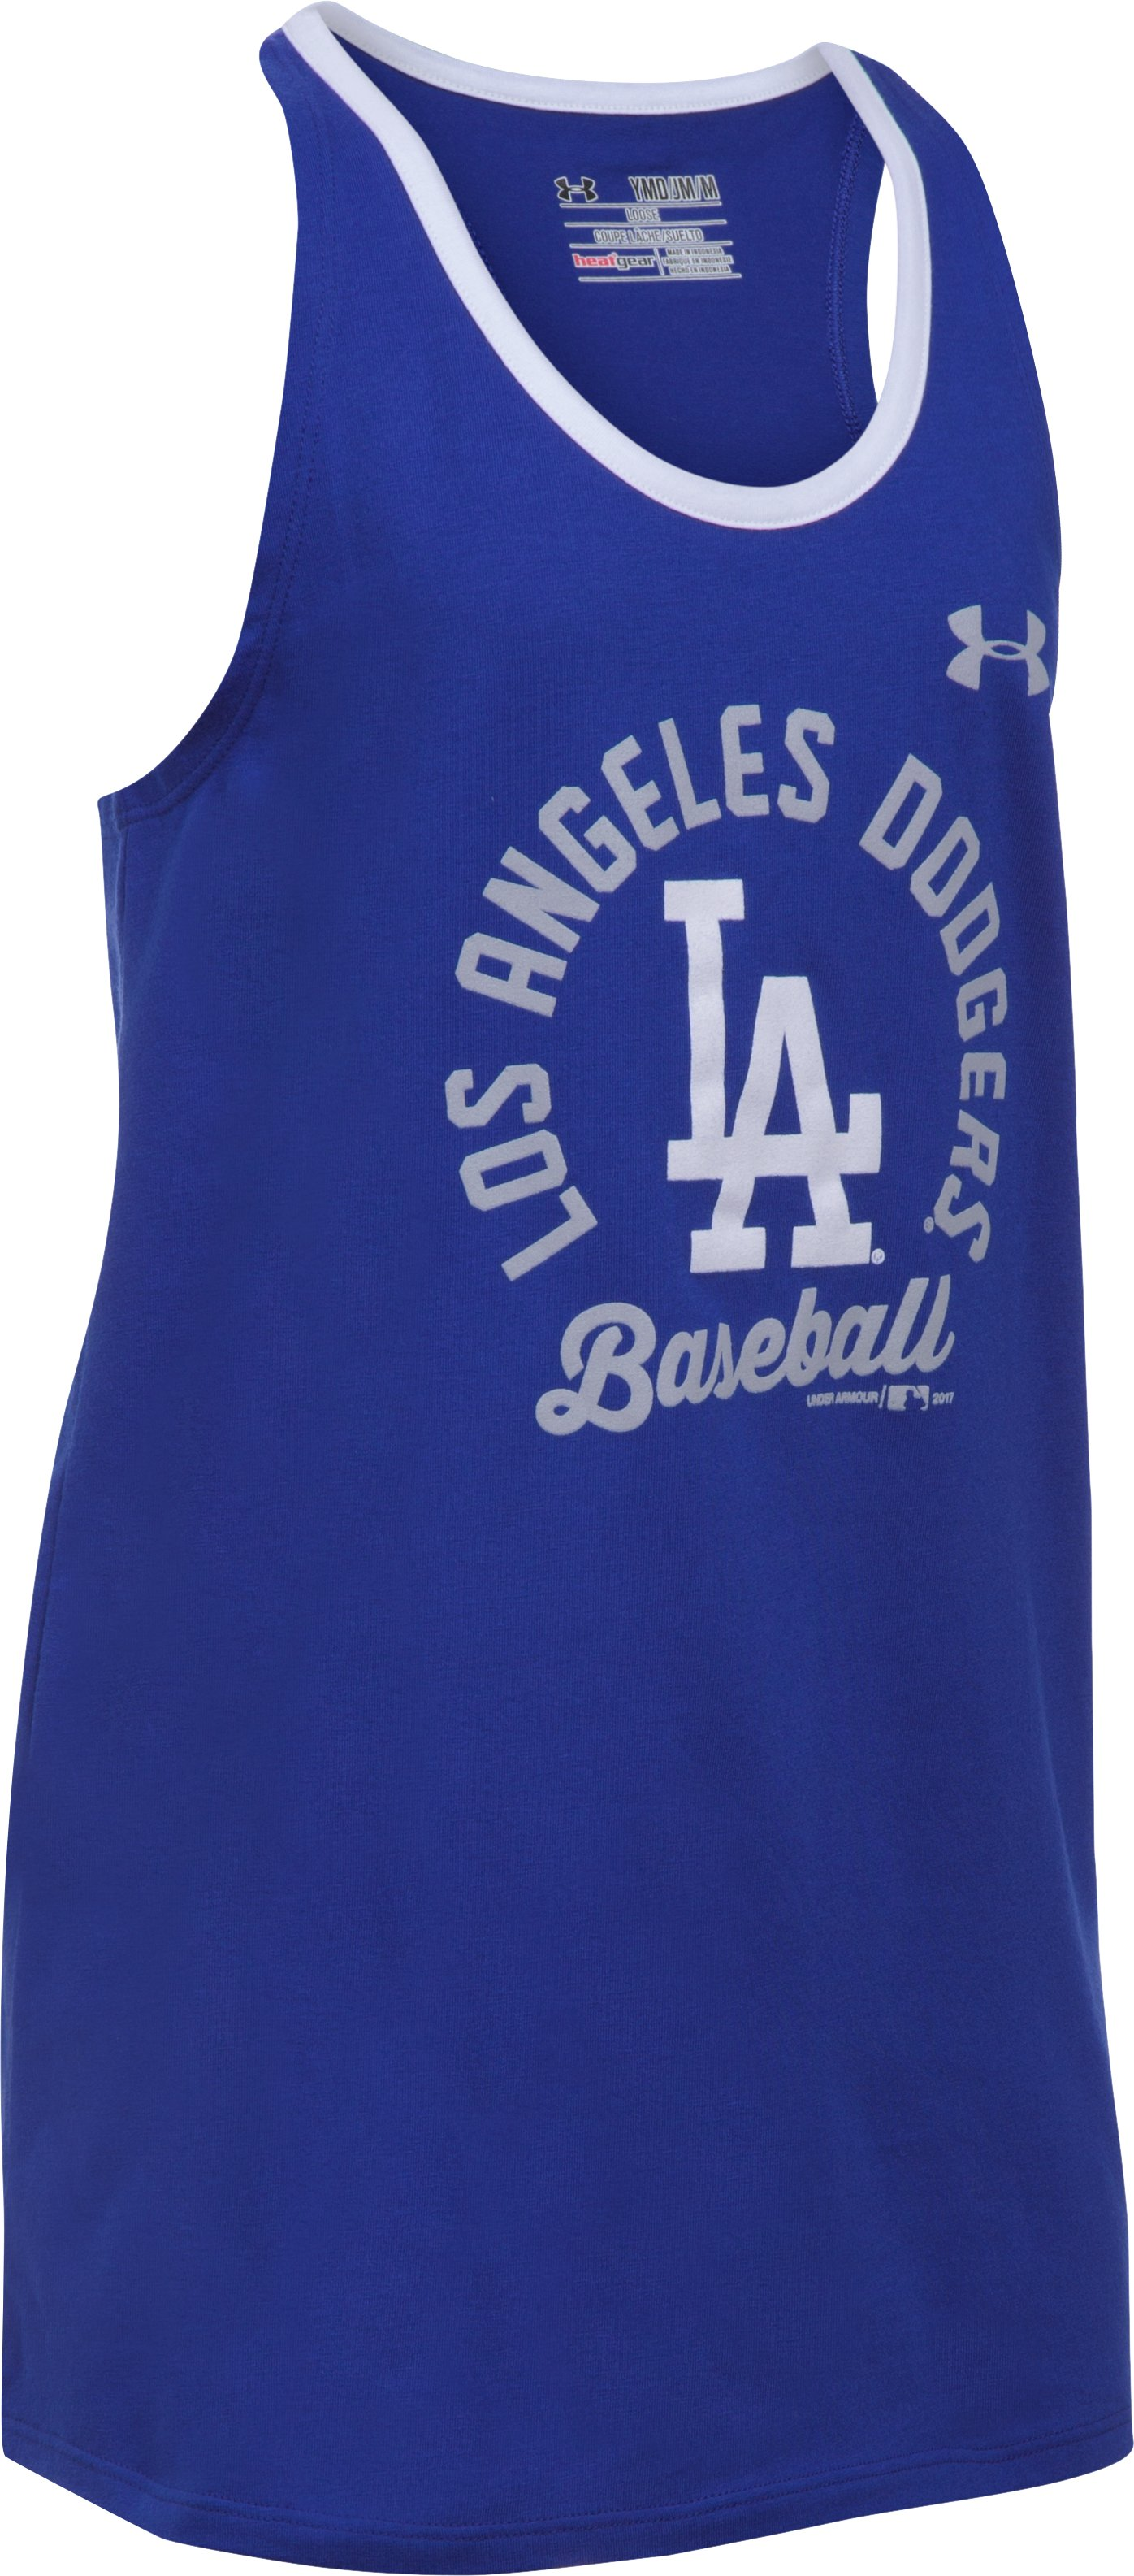 Girls' Los Angeles Dodgers Ringer Tank, Royal, undefined